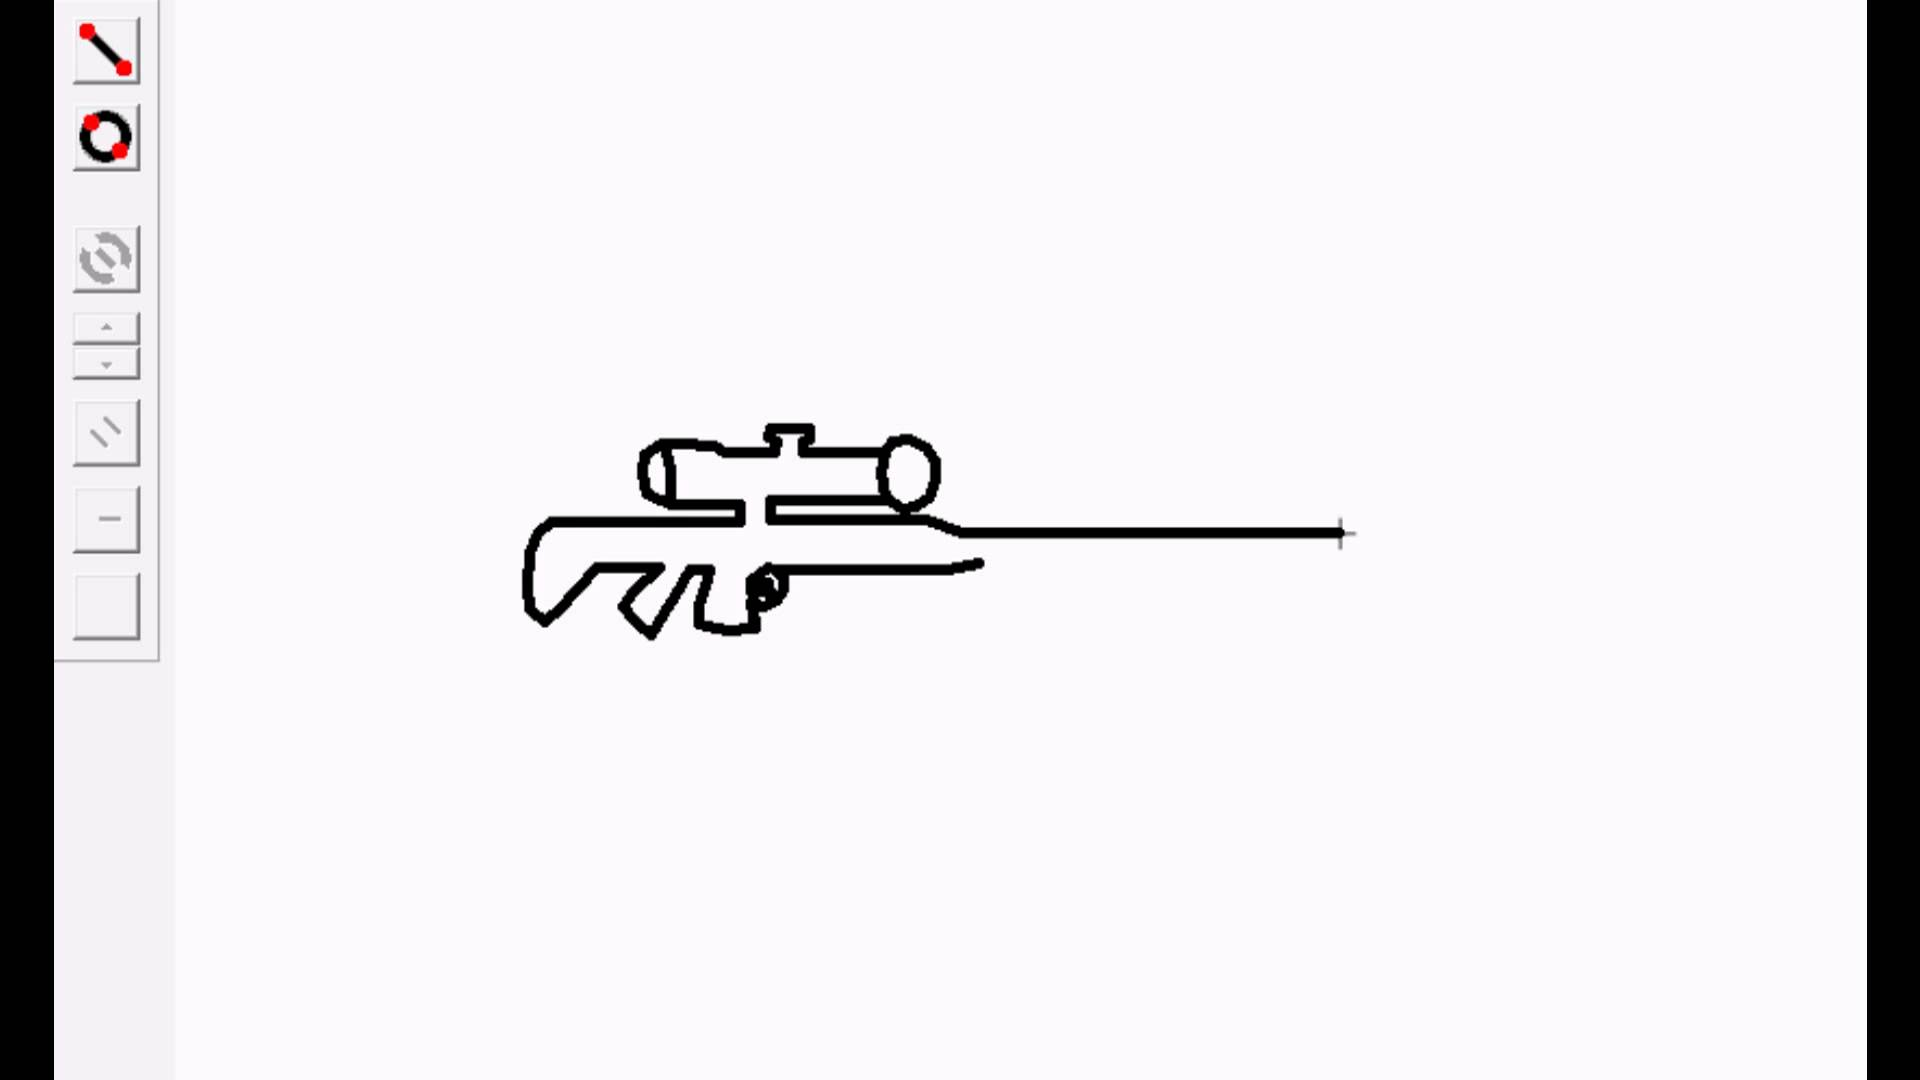 Drawn weapon stick figure How Pivot(Sniper) in a to